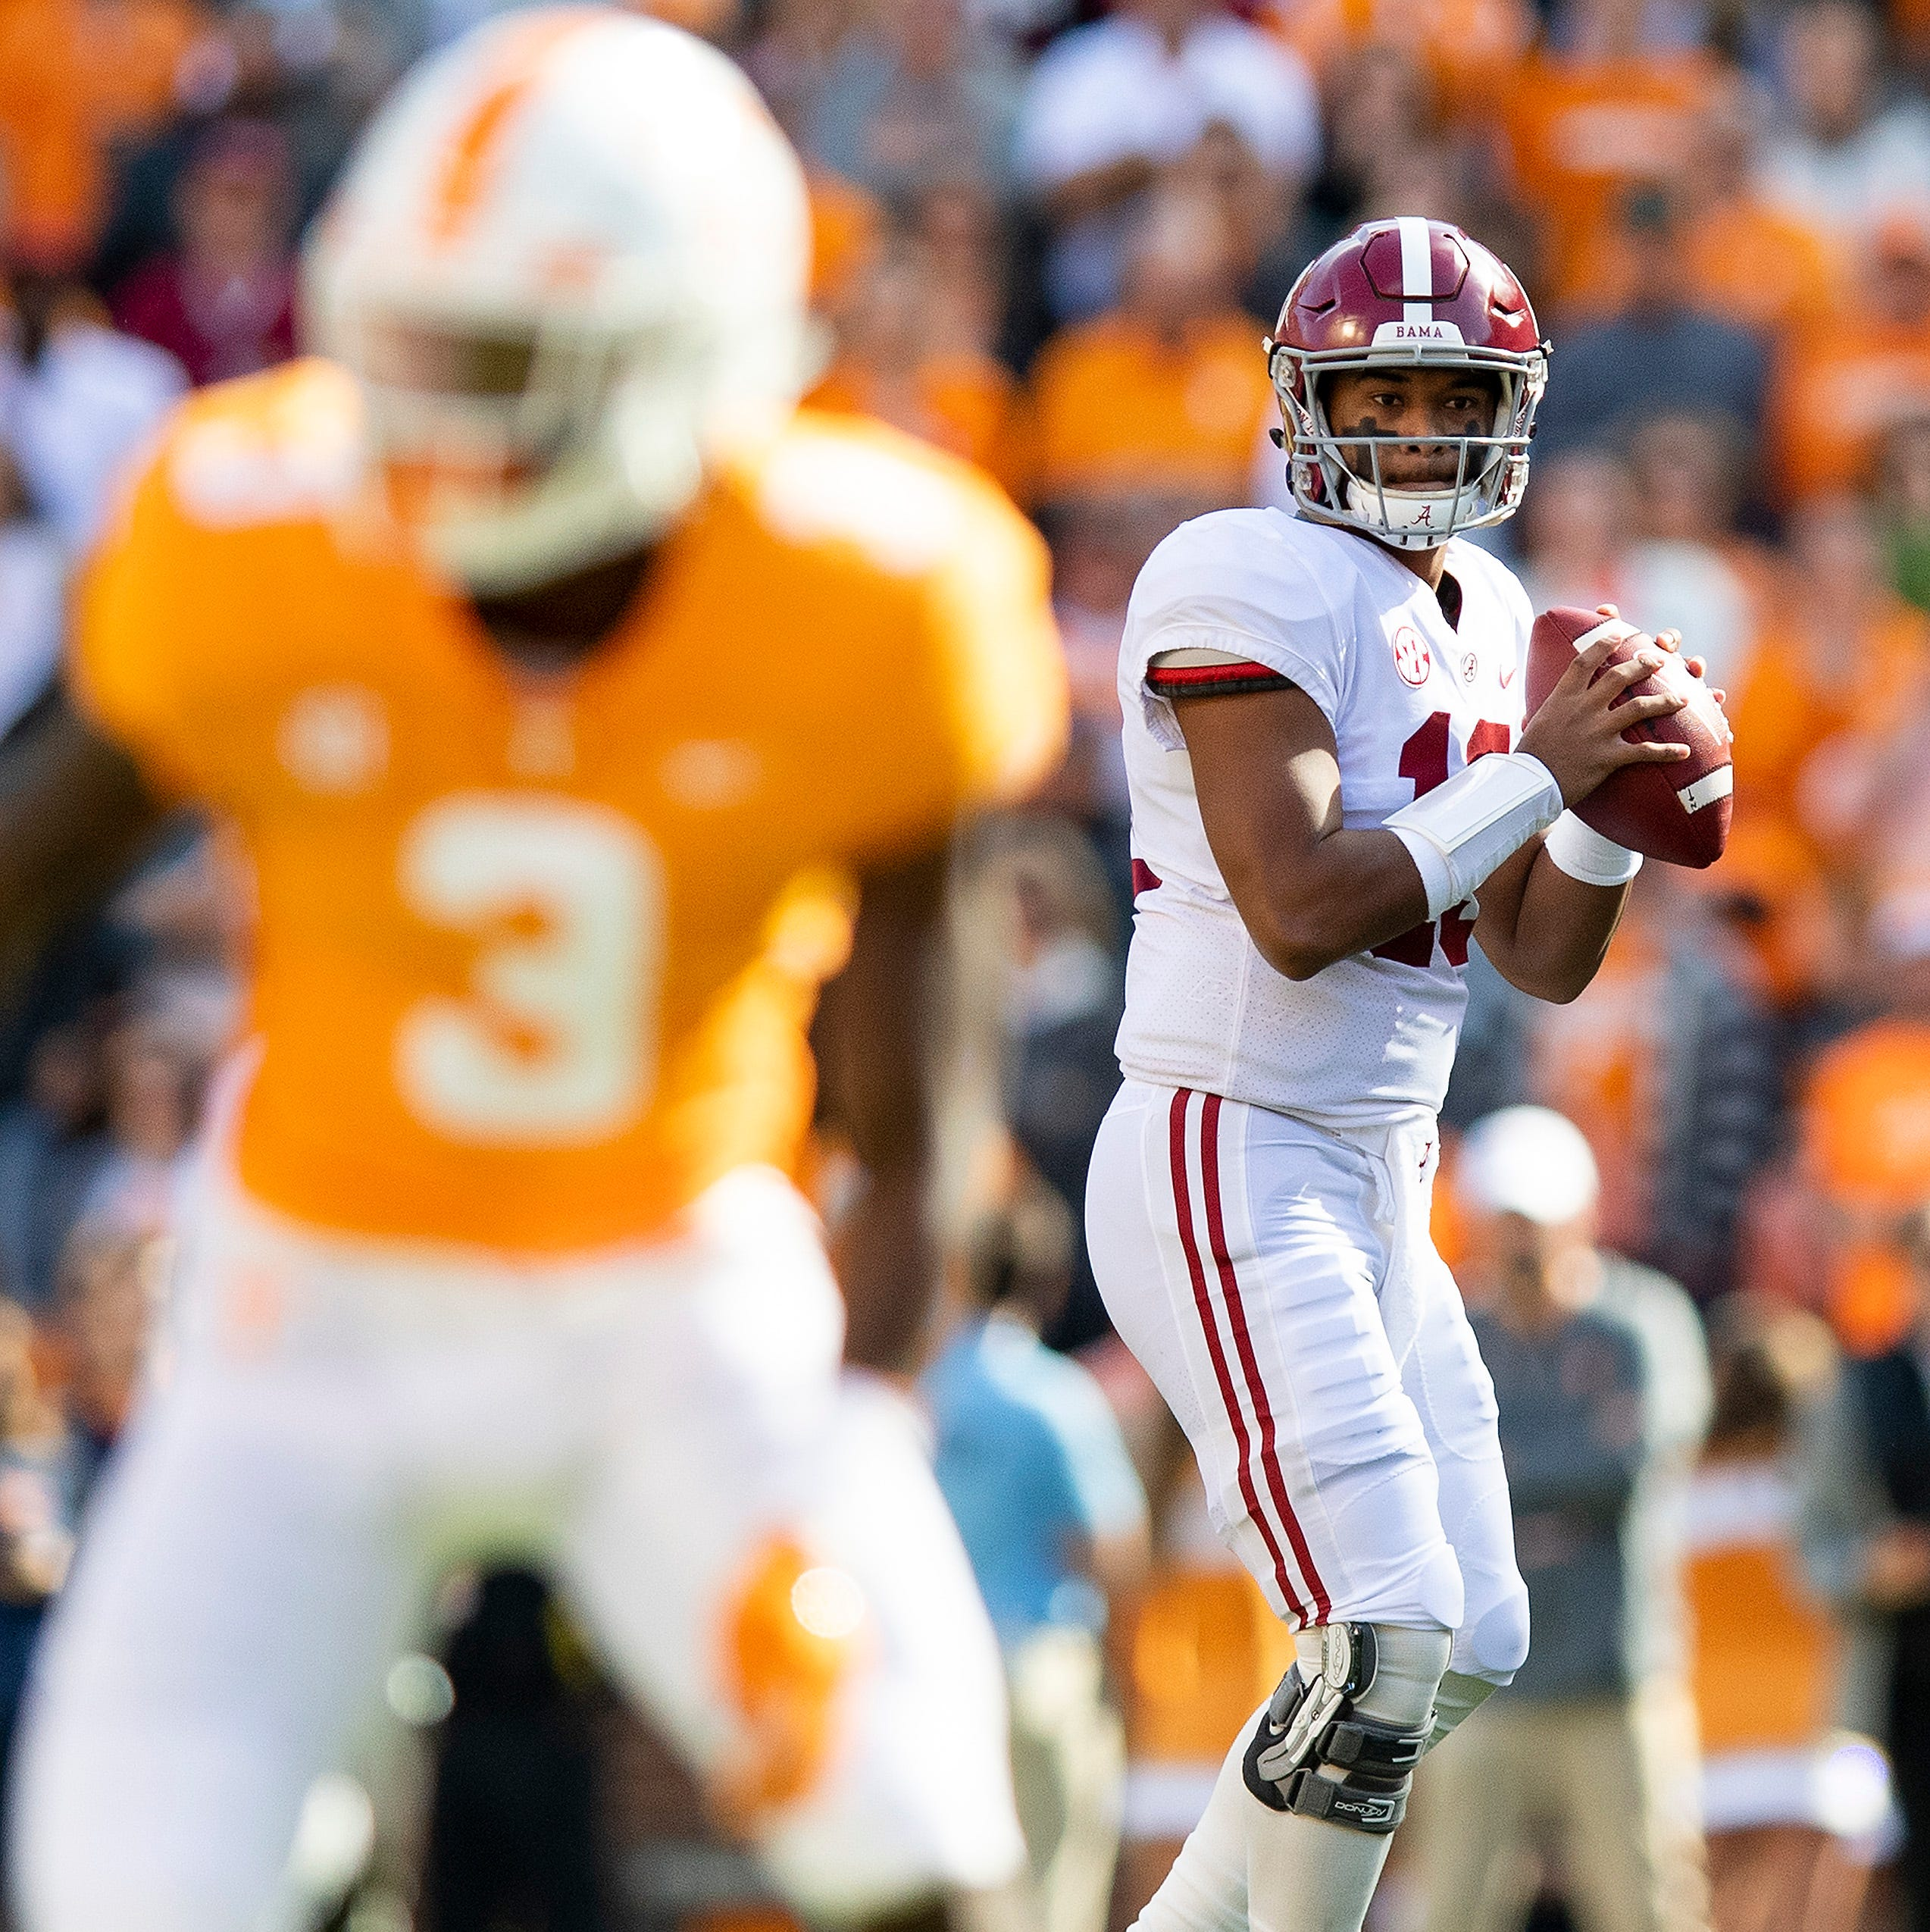 Could Alabama's offensive efficiency come back to haunt Crimson Tide?